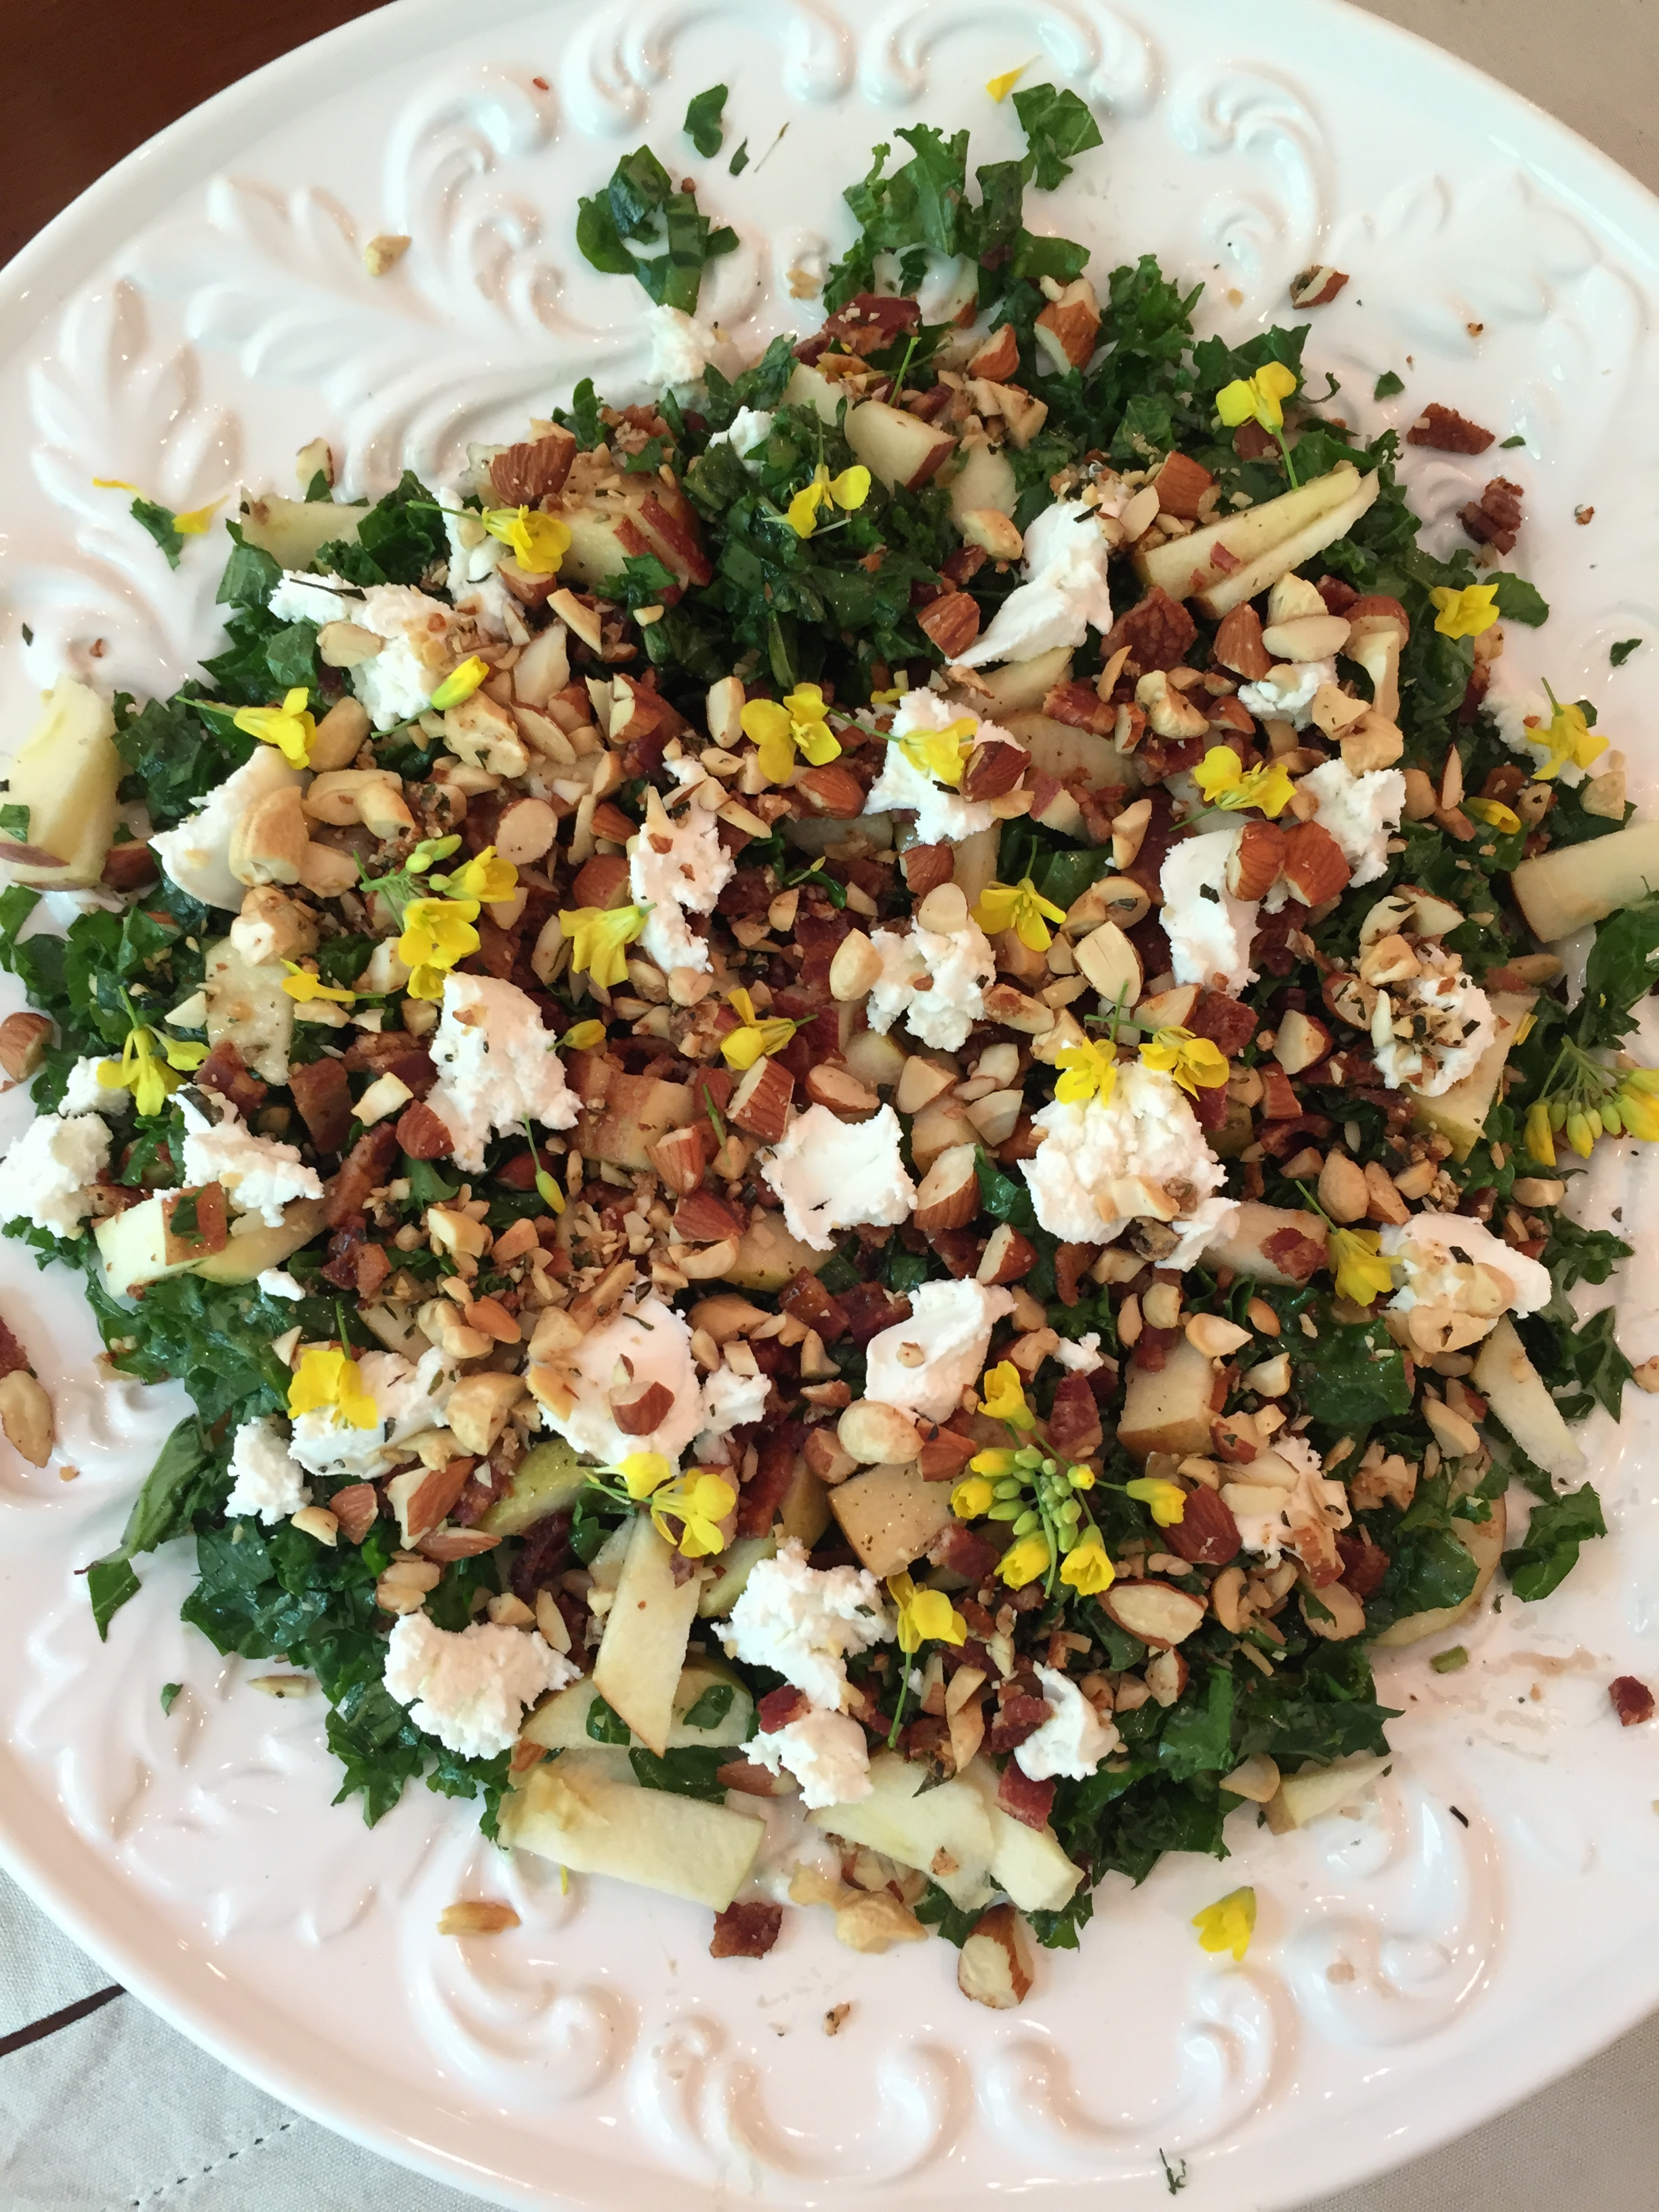 kale salad recipe with apples, bacon, rosemary nuts, goat cheese, edible flowers; CSA meal